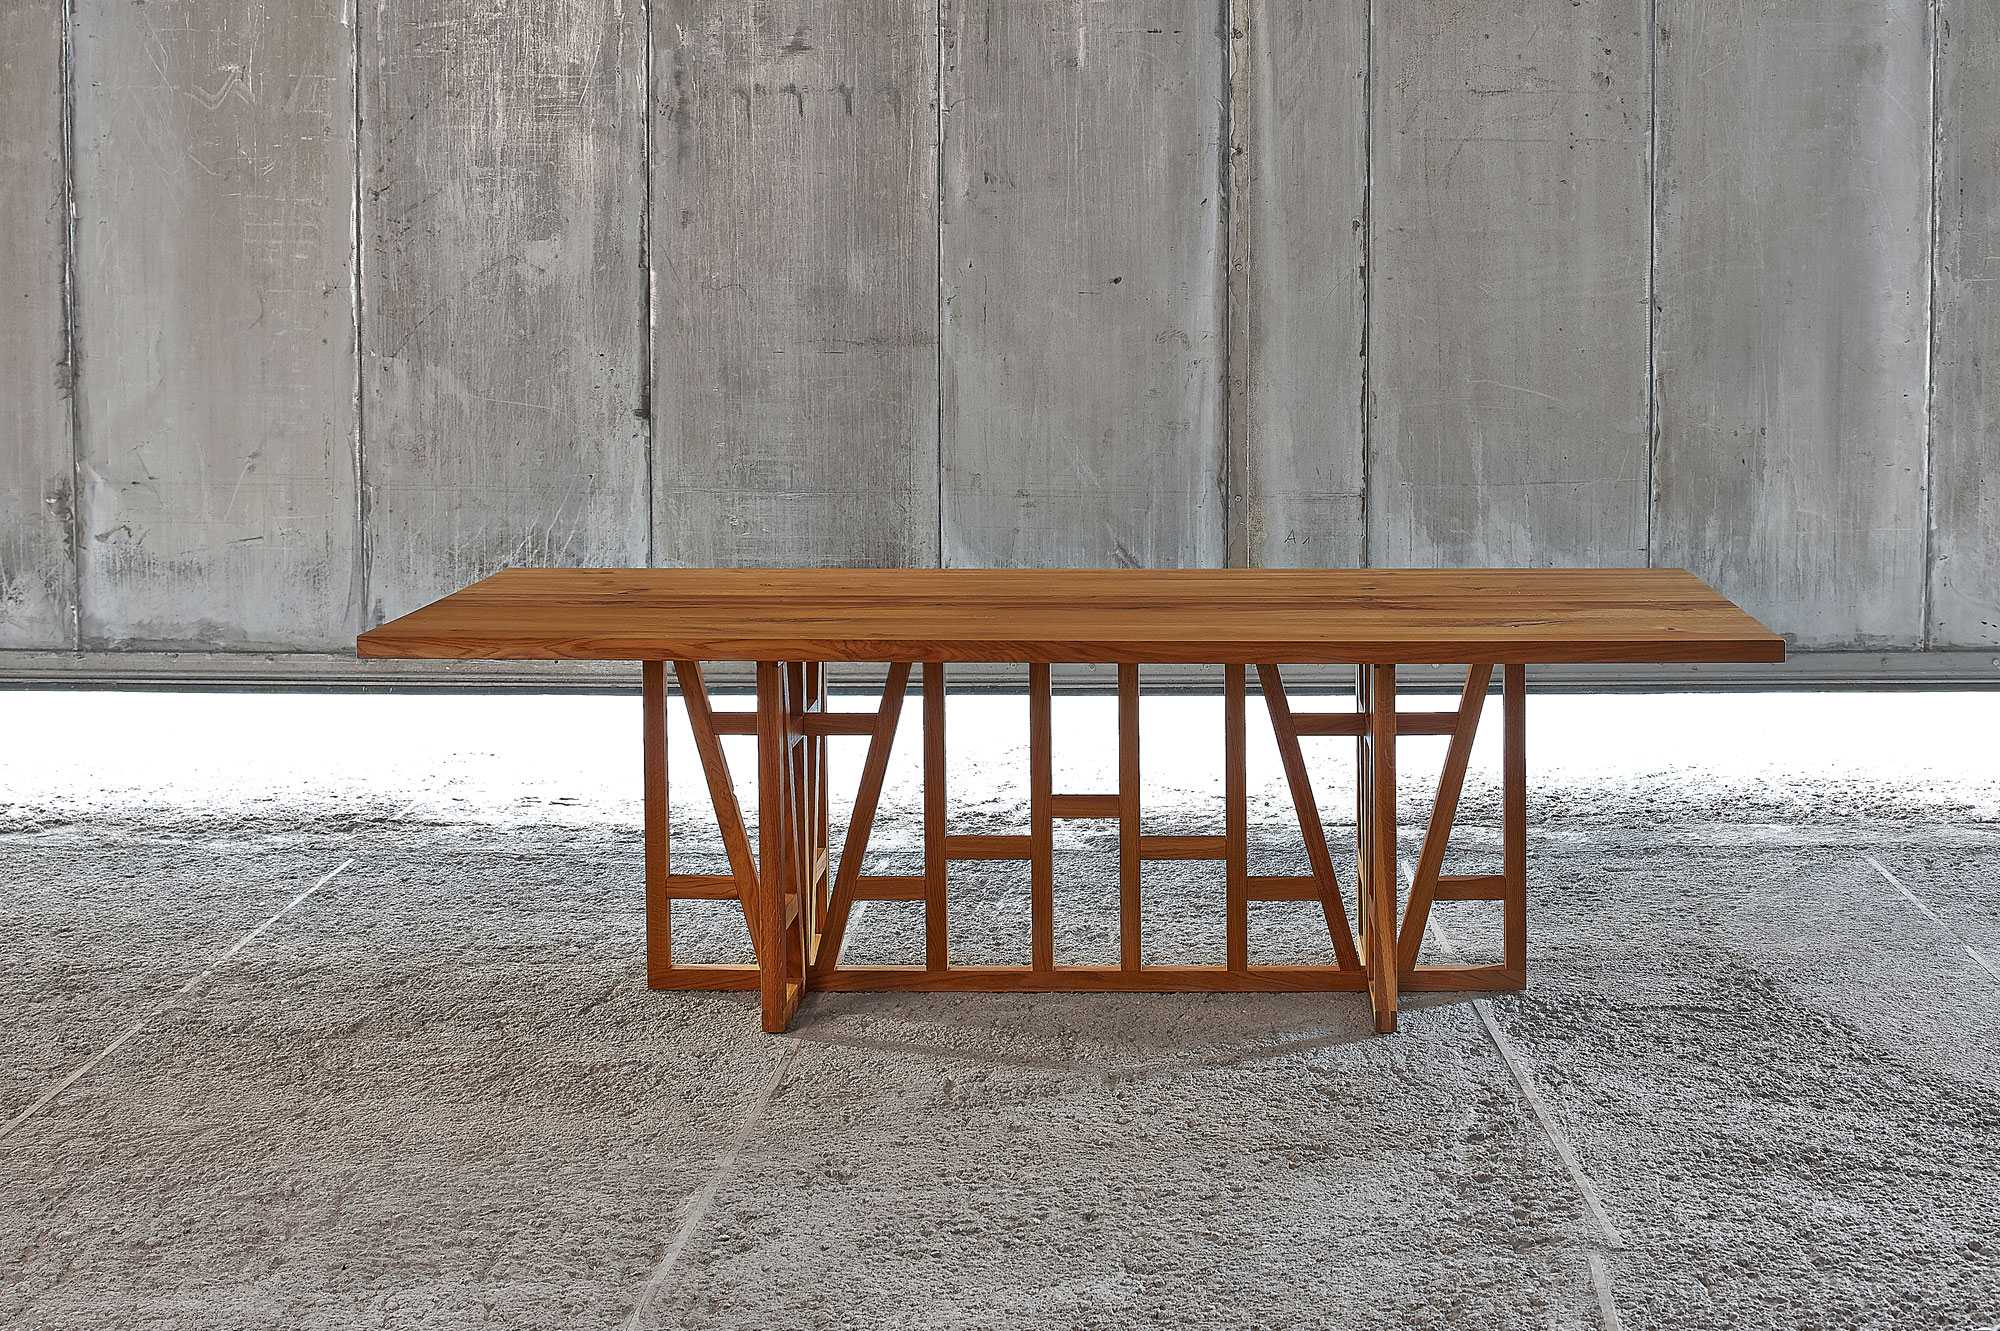 Designer Solid Wood Table FACHWERK 0537a custom made in solid wood by vitamin design